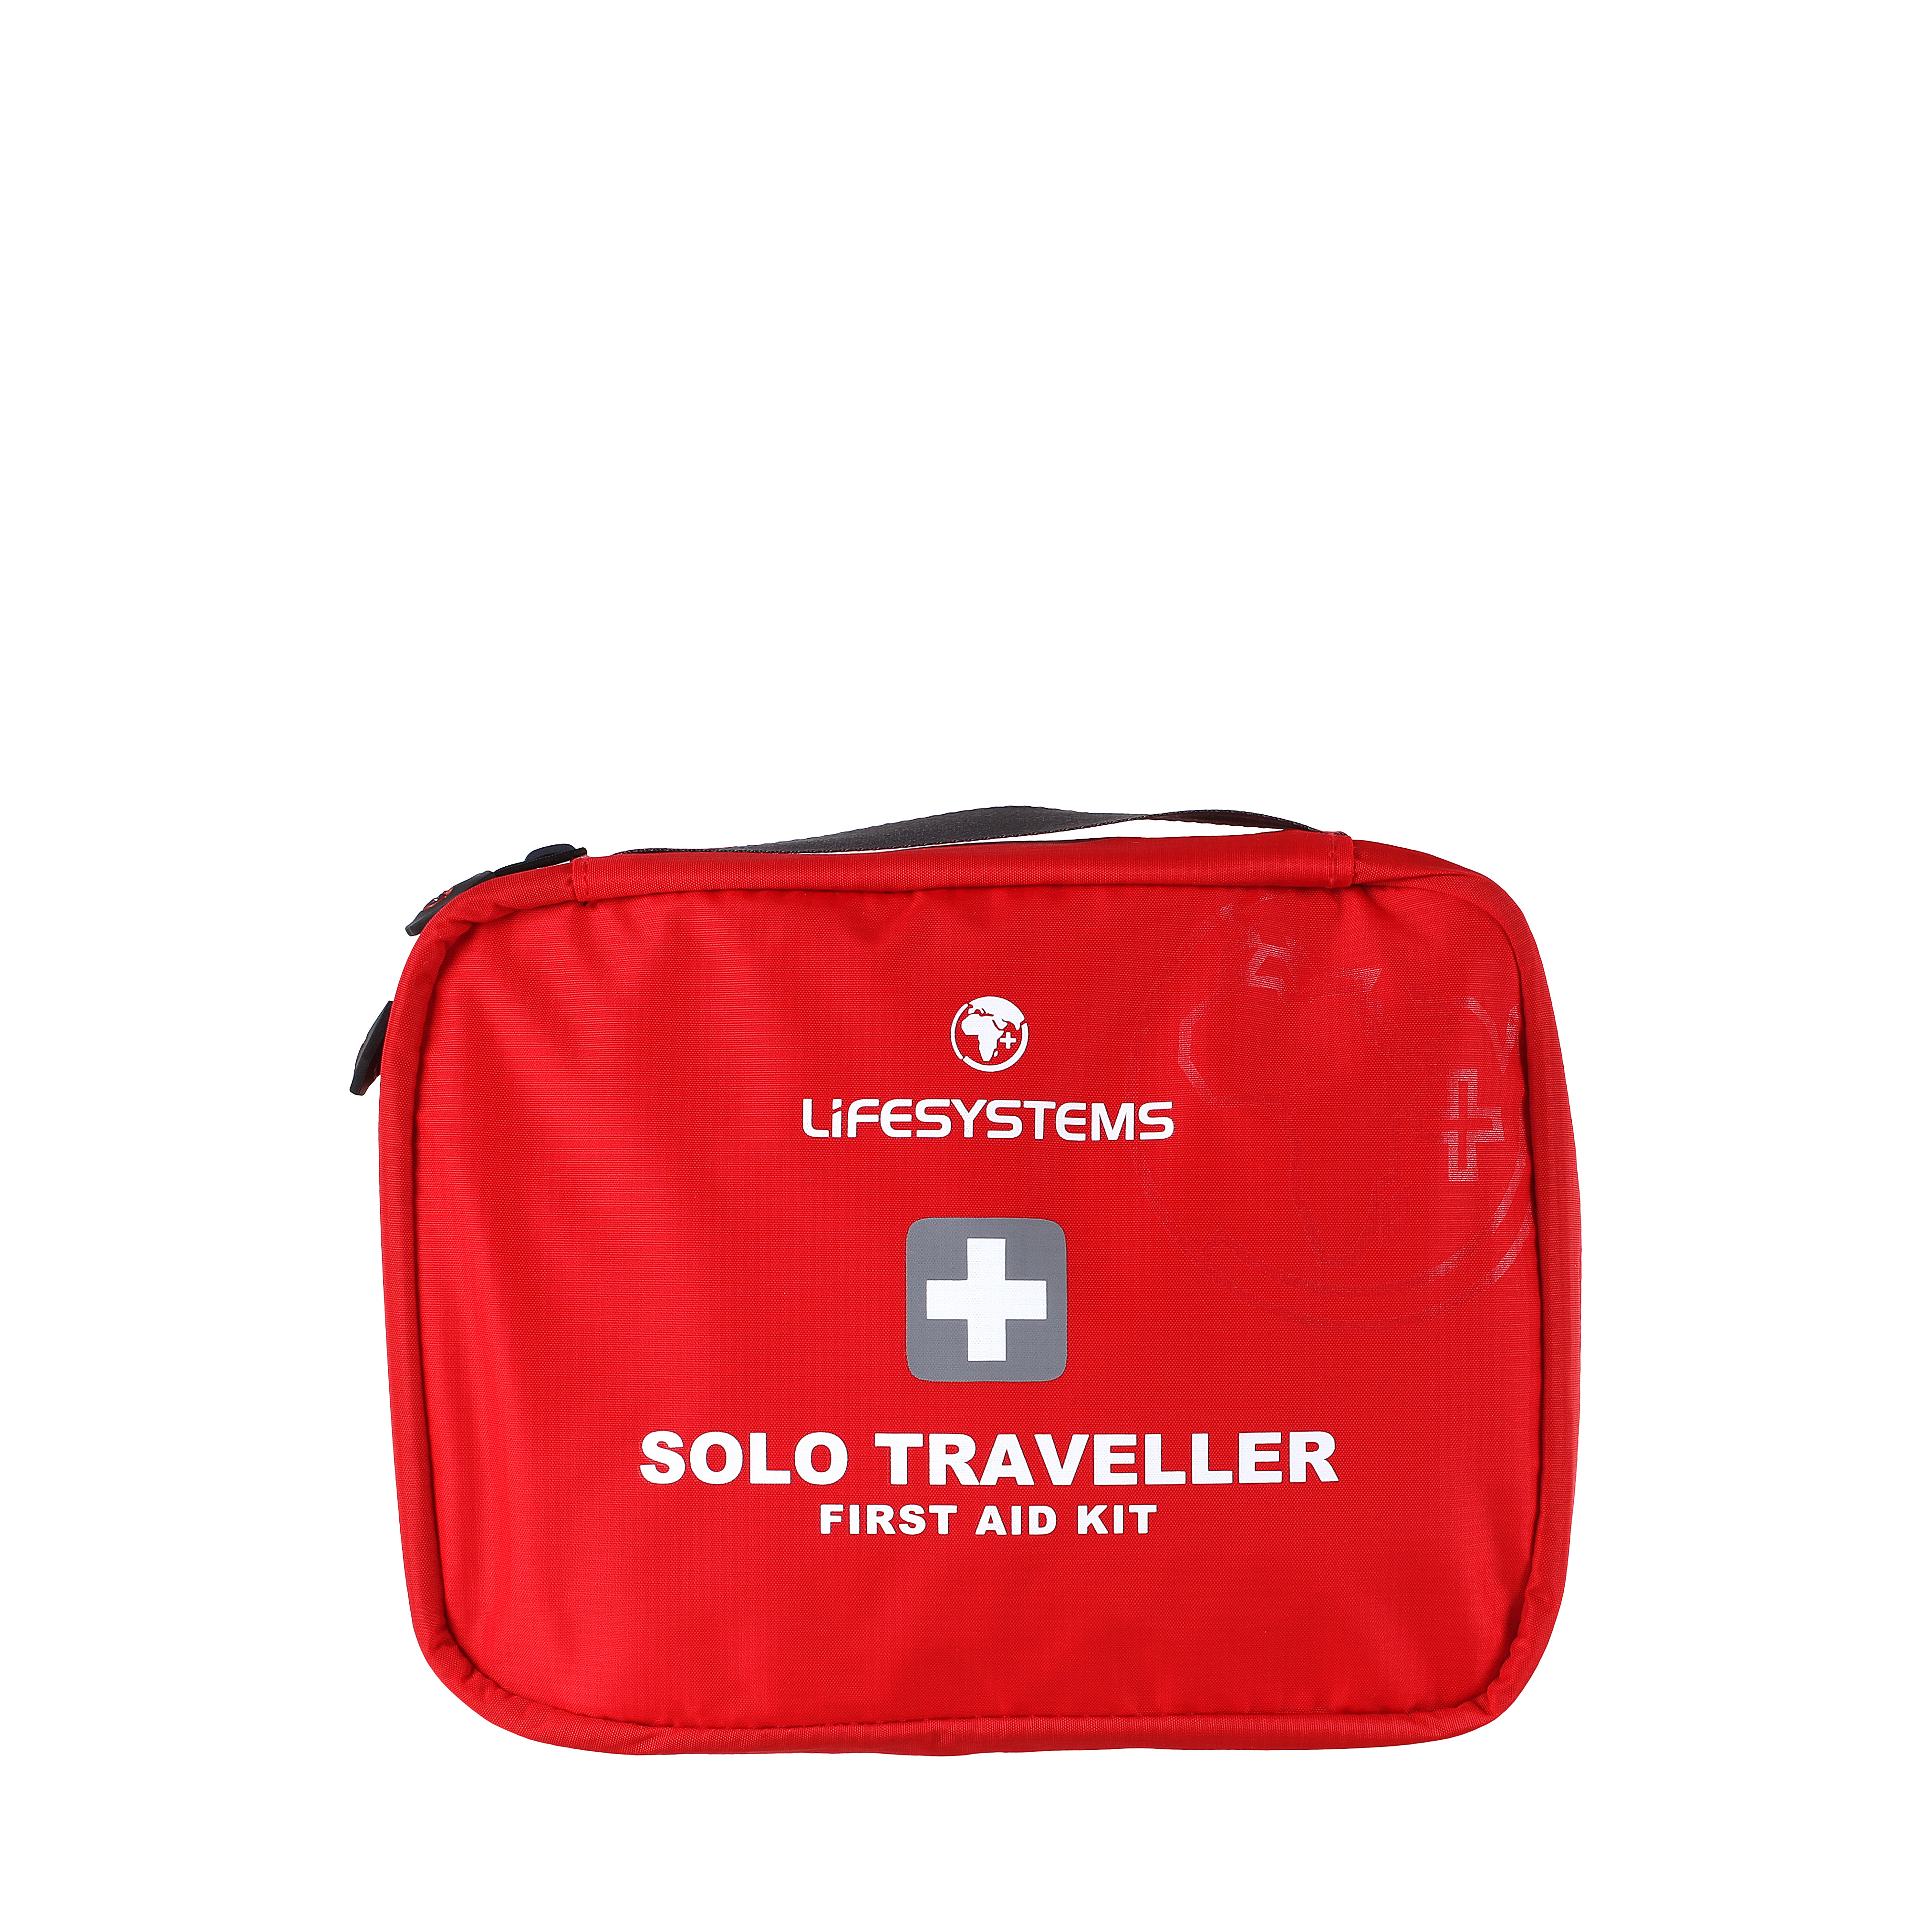 9db08119ce Lifesystems Solo Traveller First Aid Kit